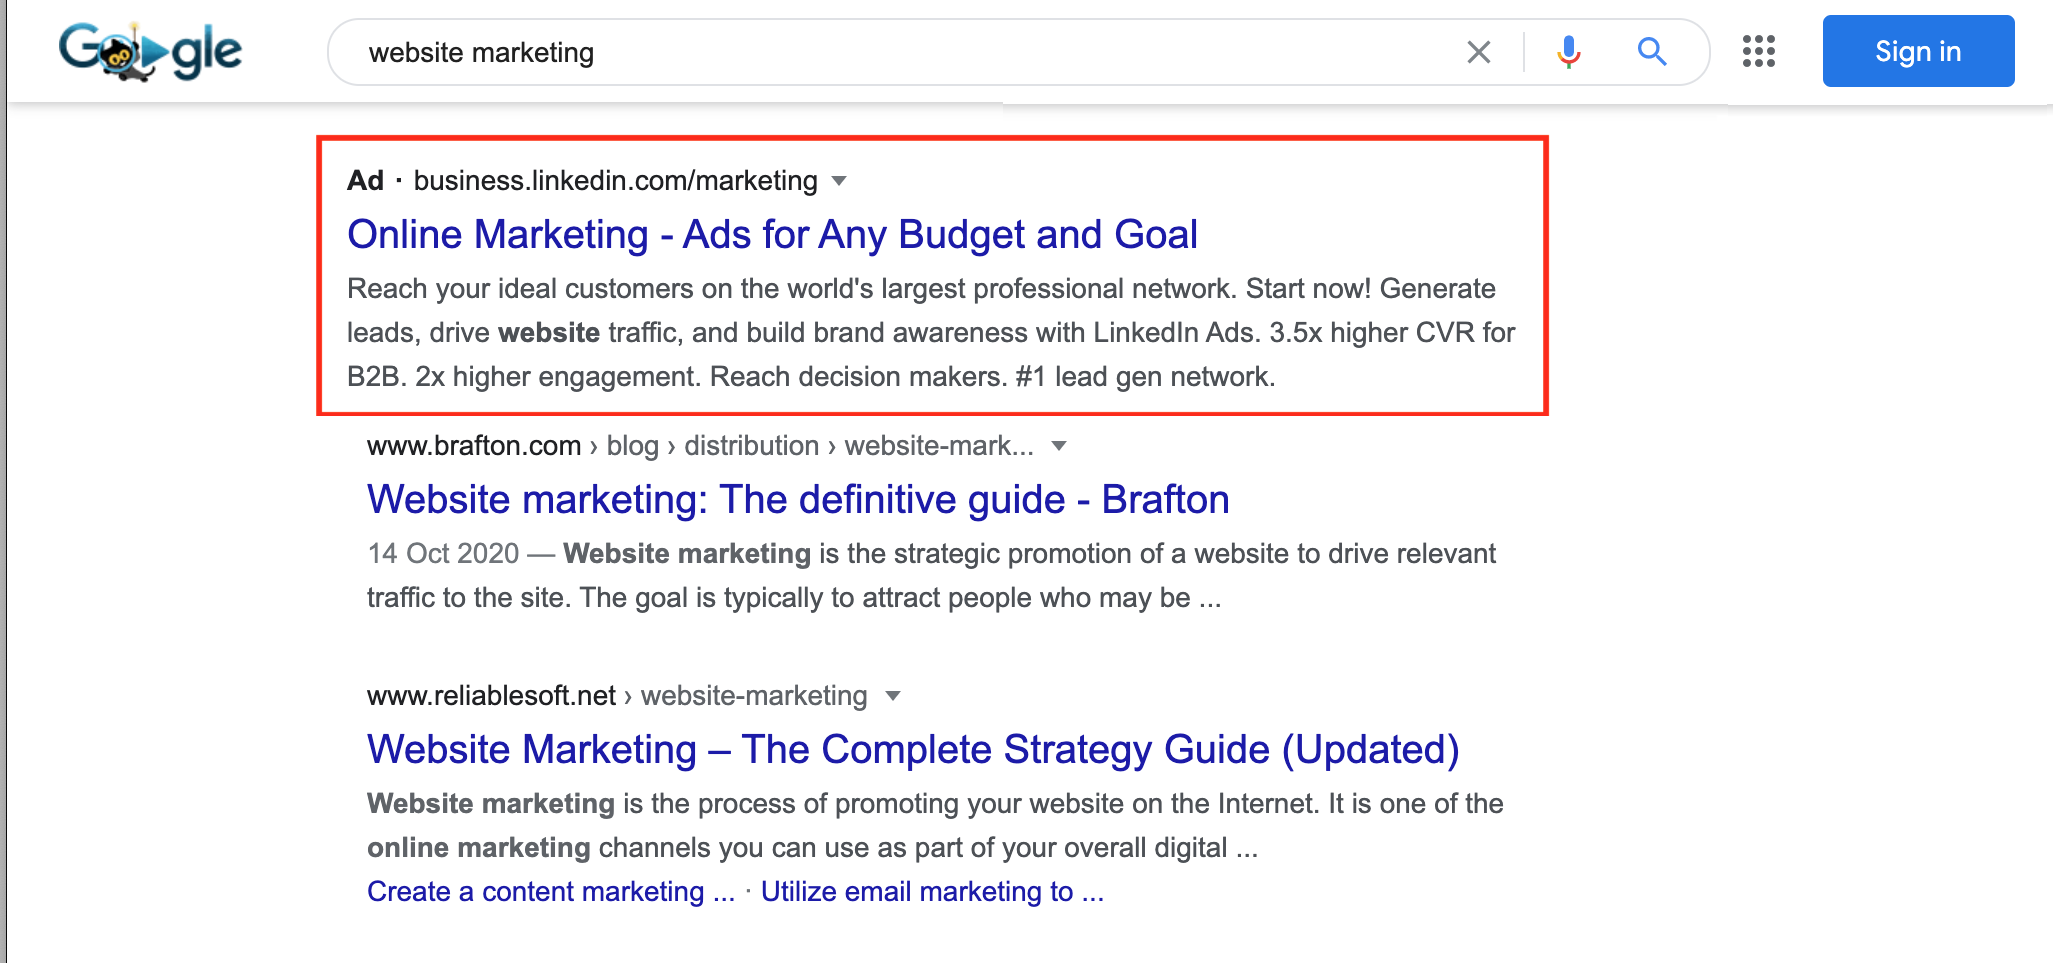 google-search-ad-example-in-search-results